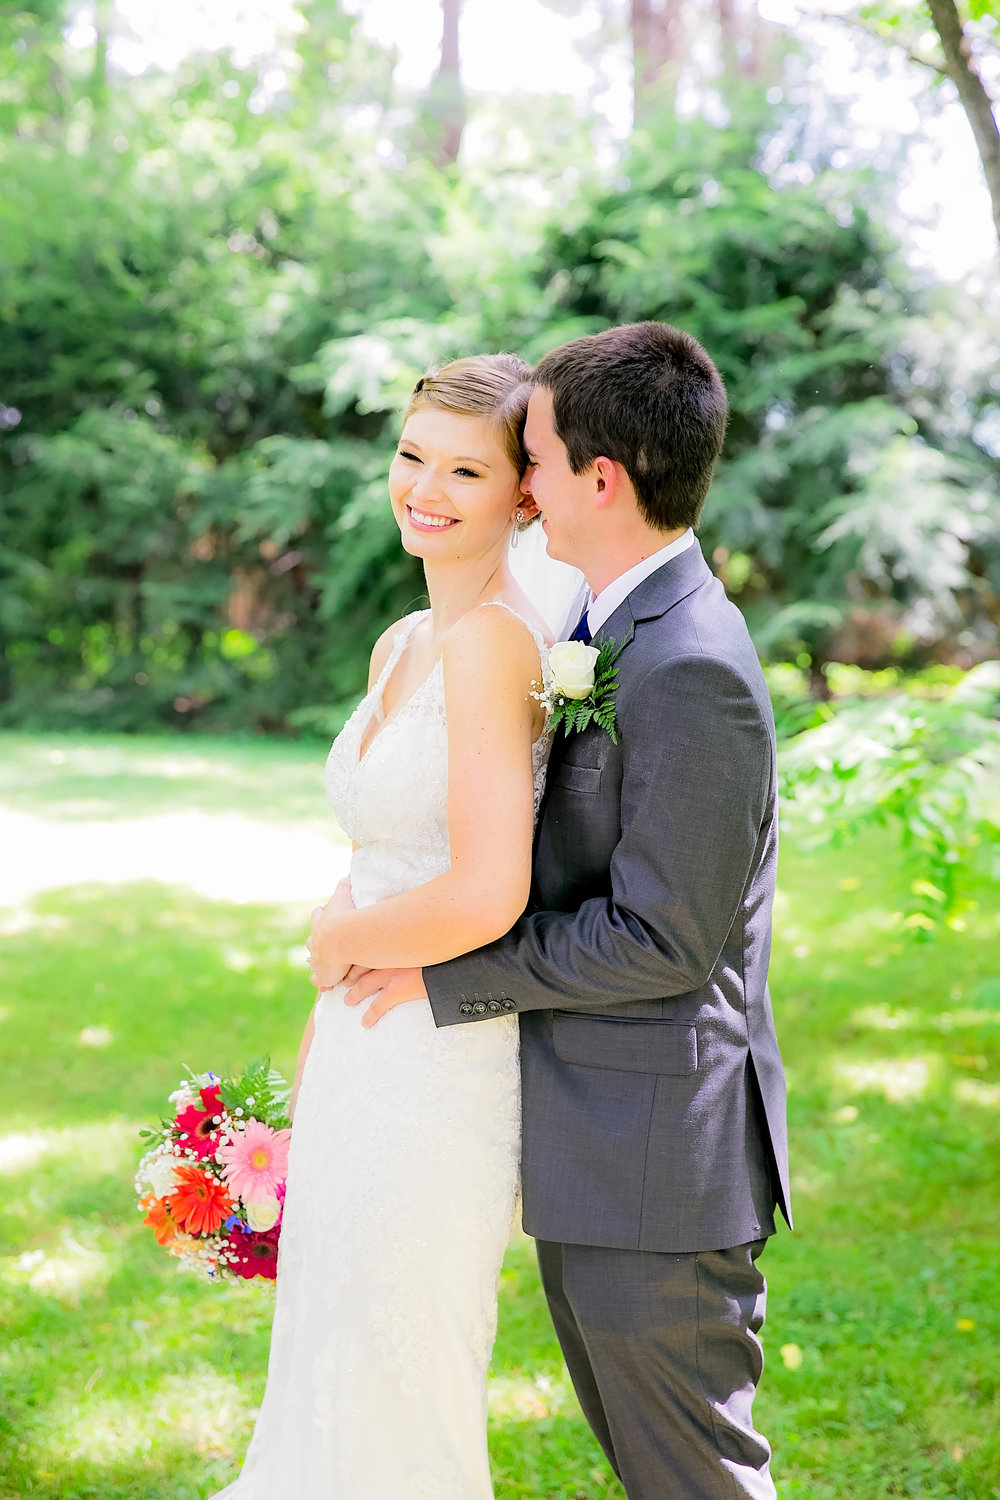 Hot Springs, NC wedding, East Tennessee Wedding photography, bride and groom laughing